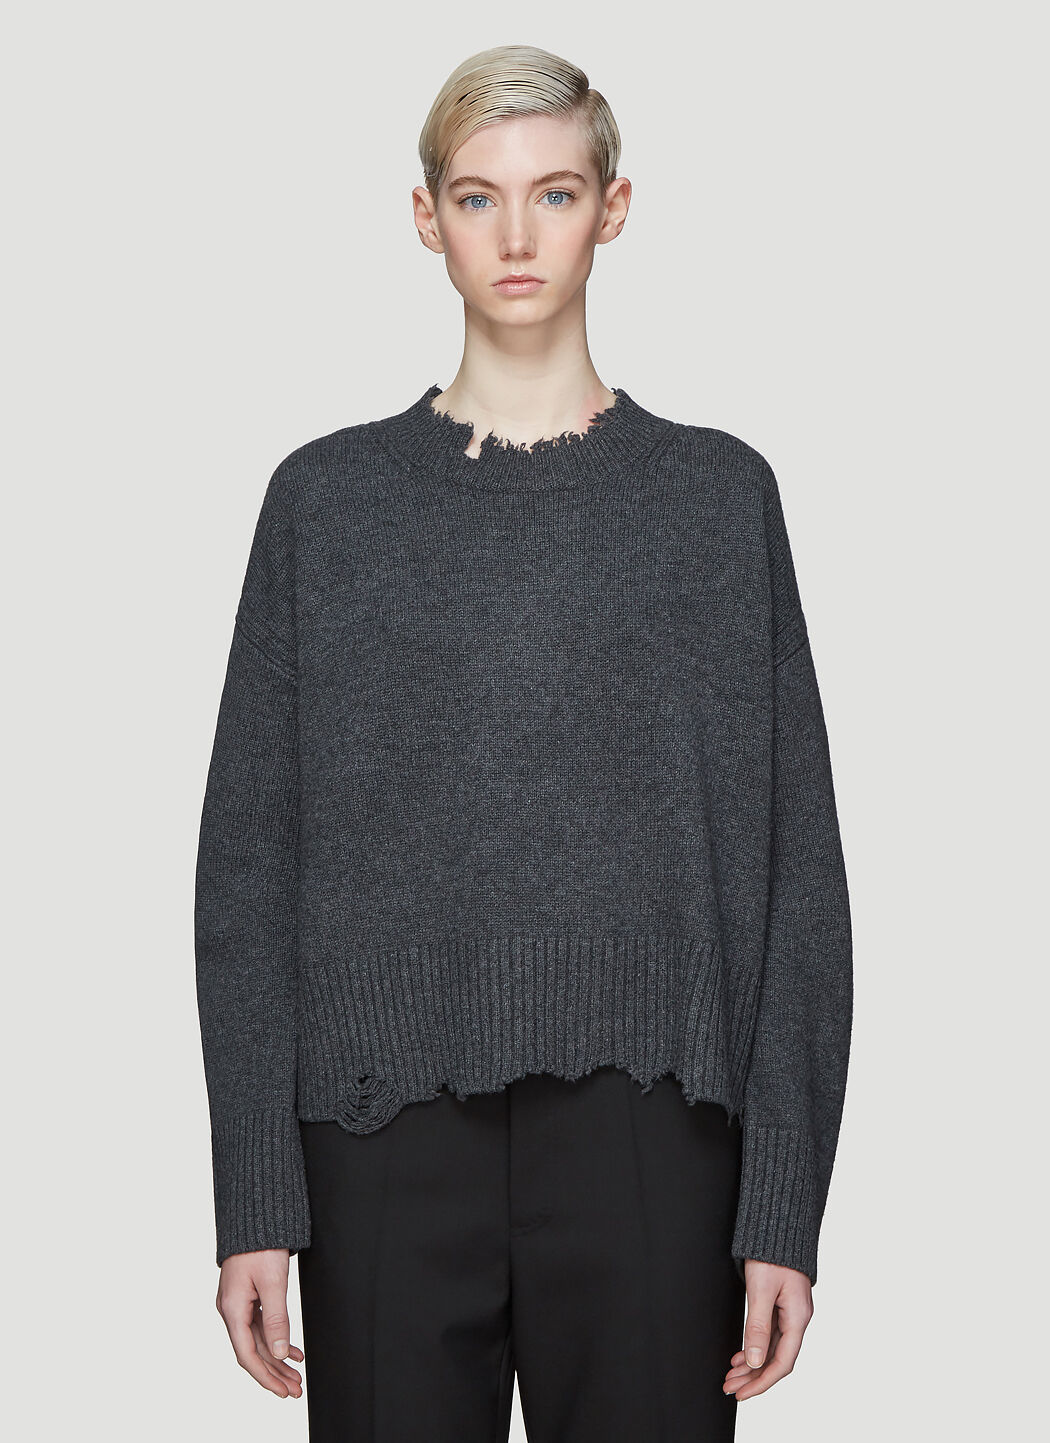 Helmut Lang Knits Elephant Crew Neck Knit Sweater in Grey